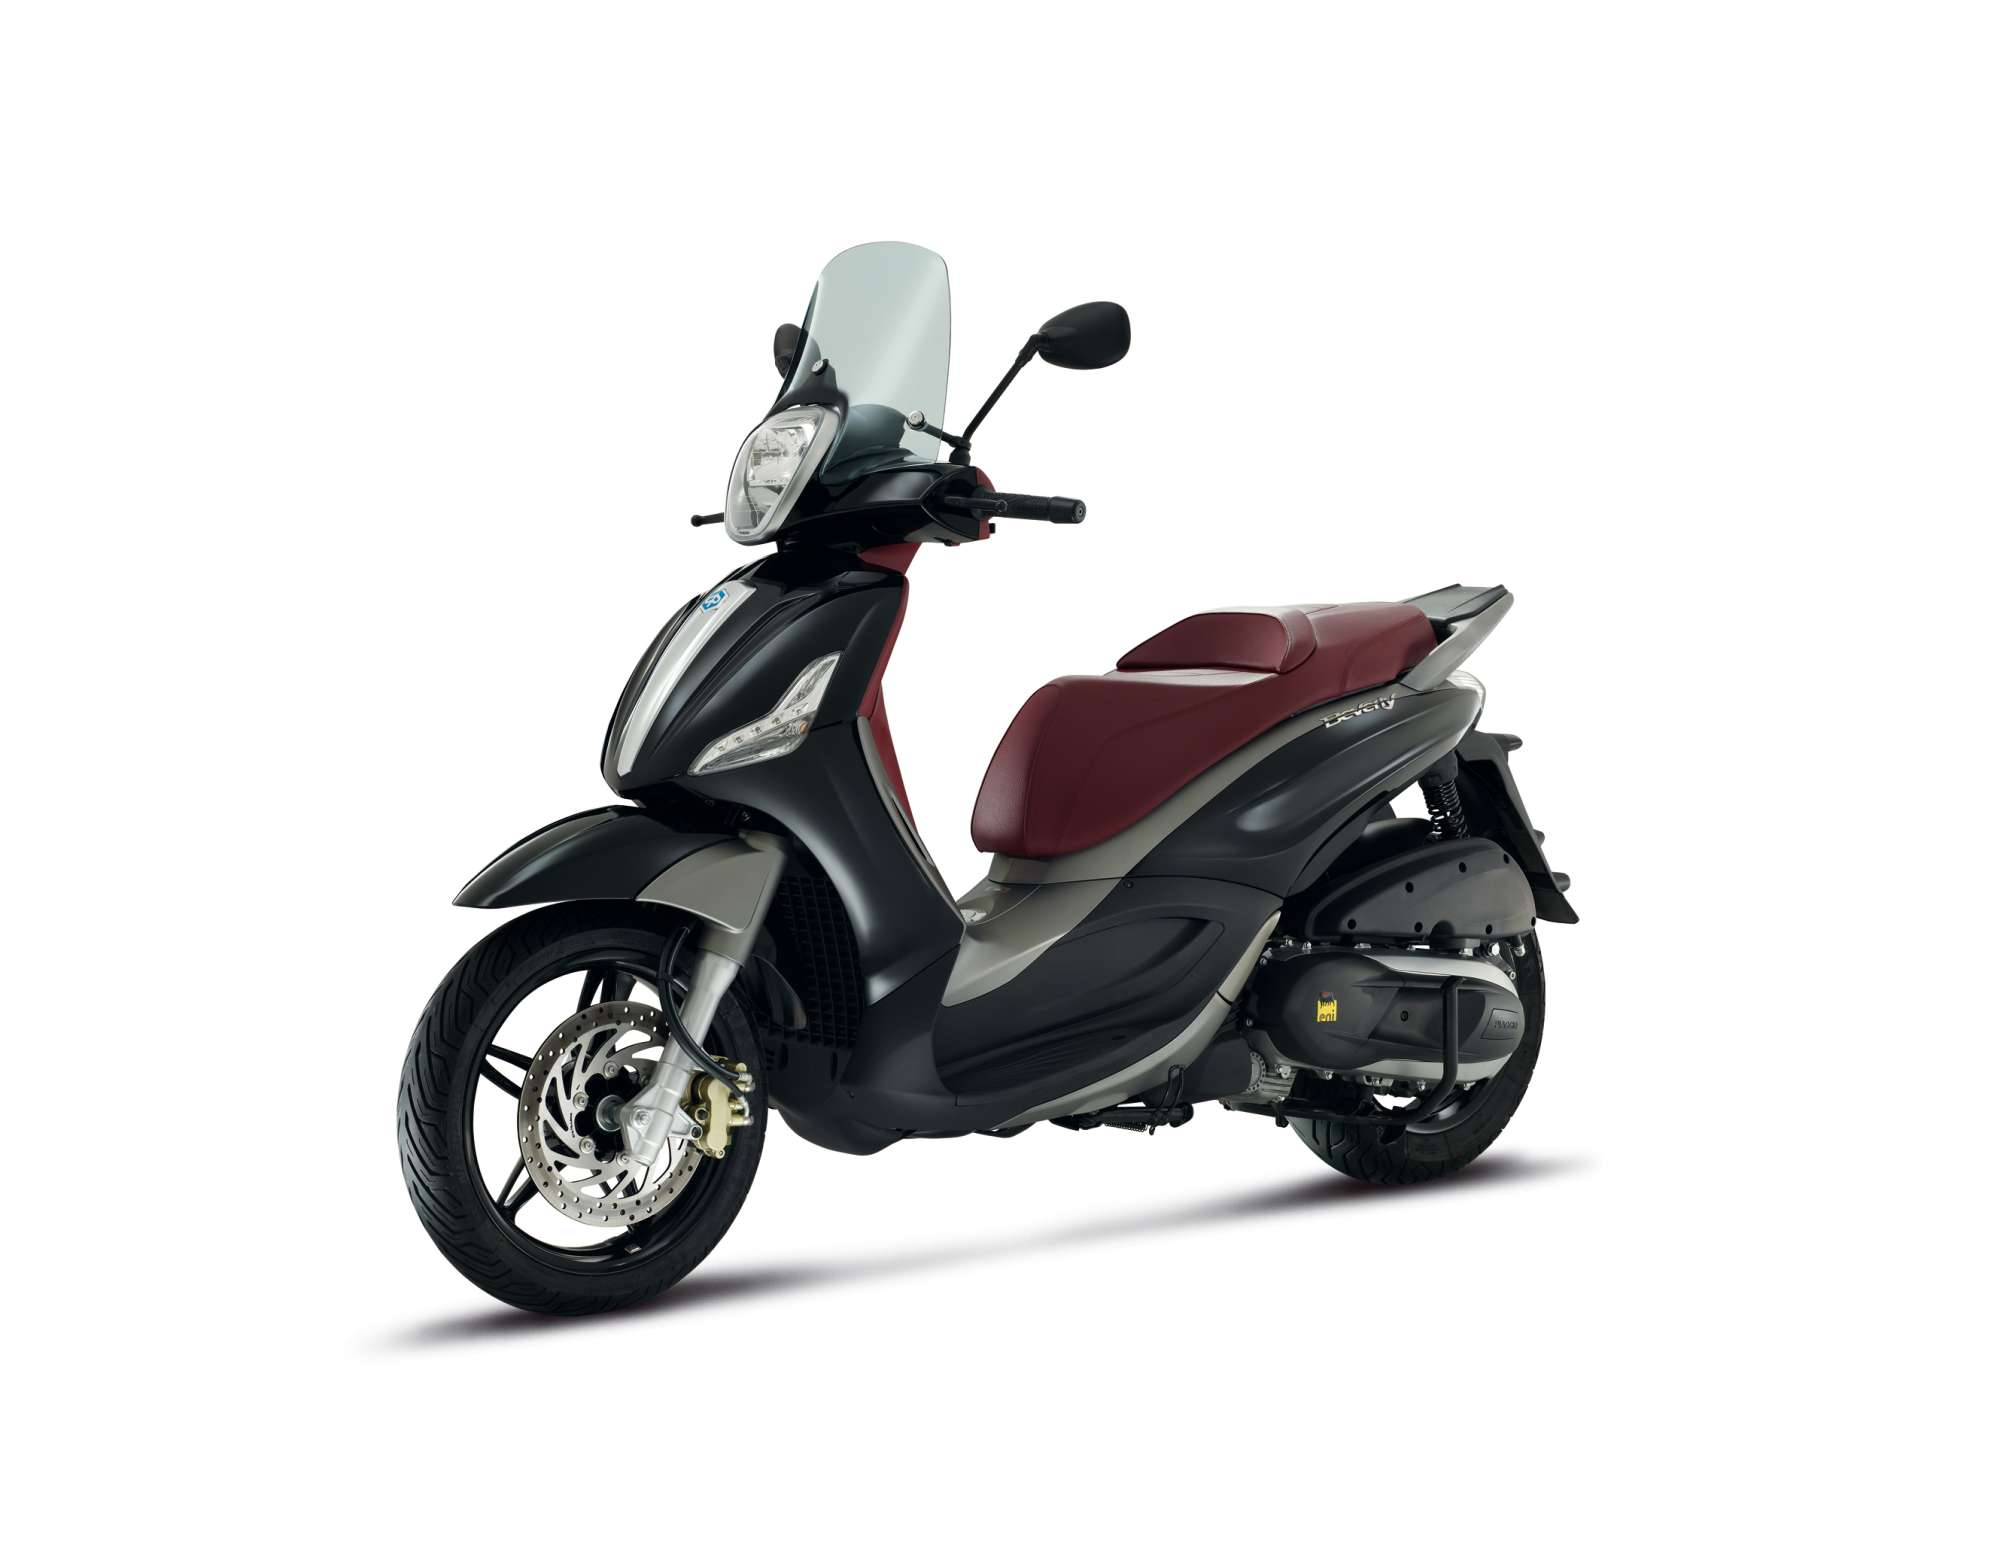 piaggio beverly 350ie sport touring all technical data of the model beverly 350ie sport. Black Bedroom Furniture Sets. Home Design Ideas